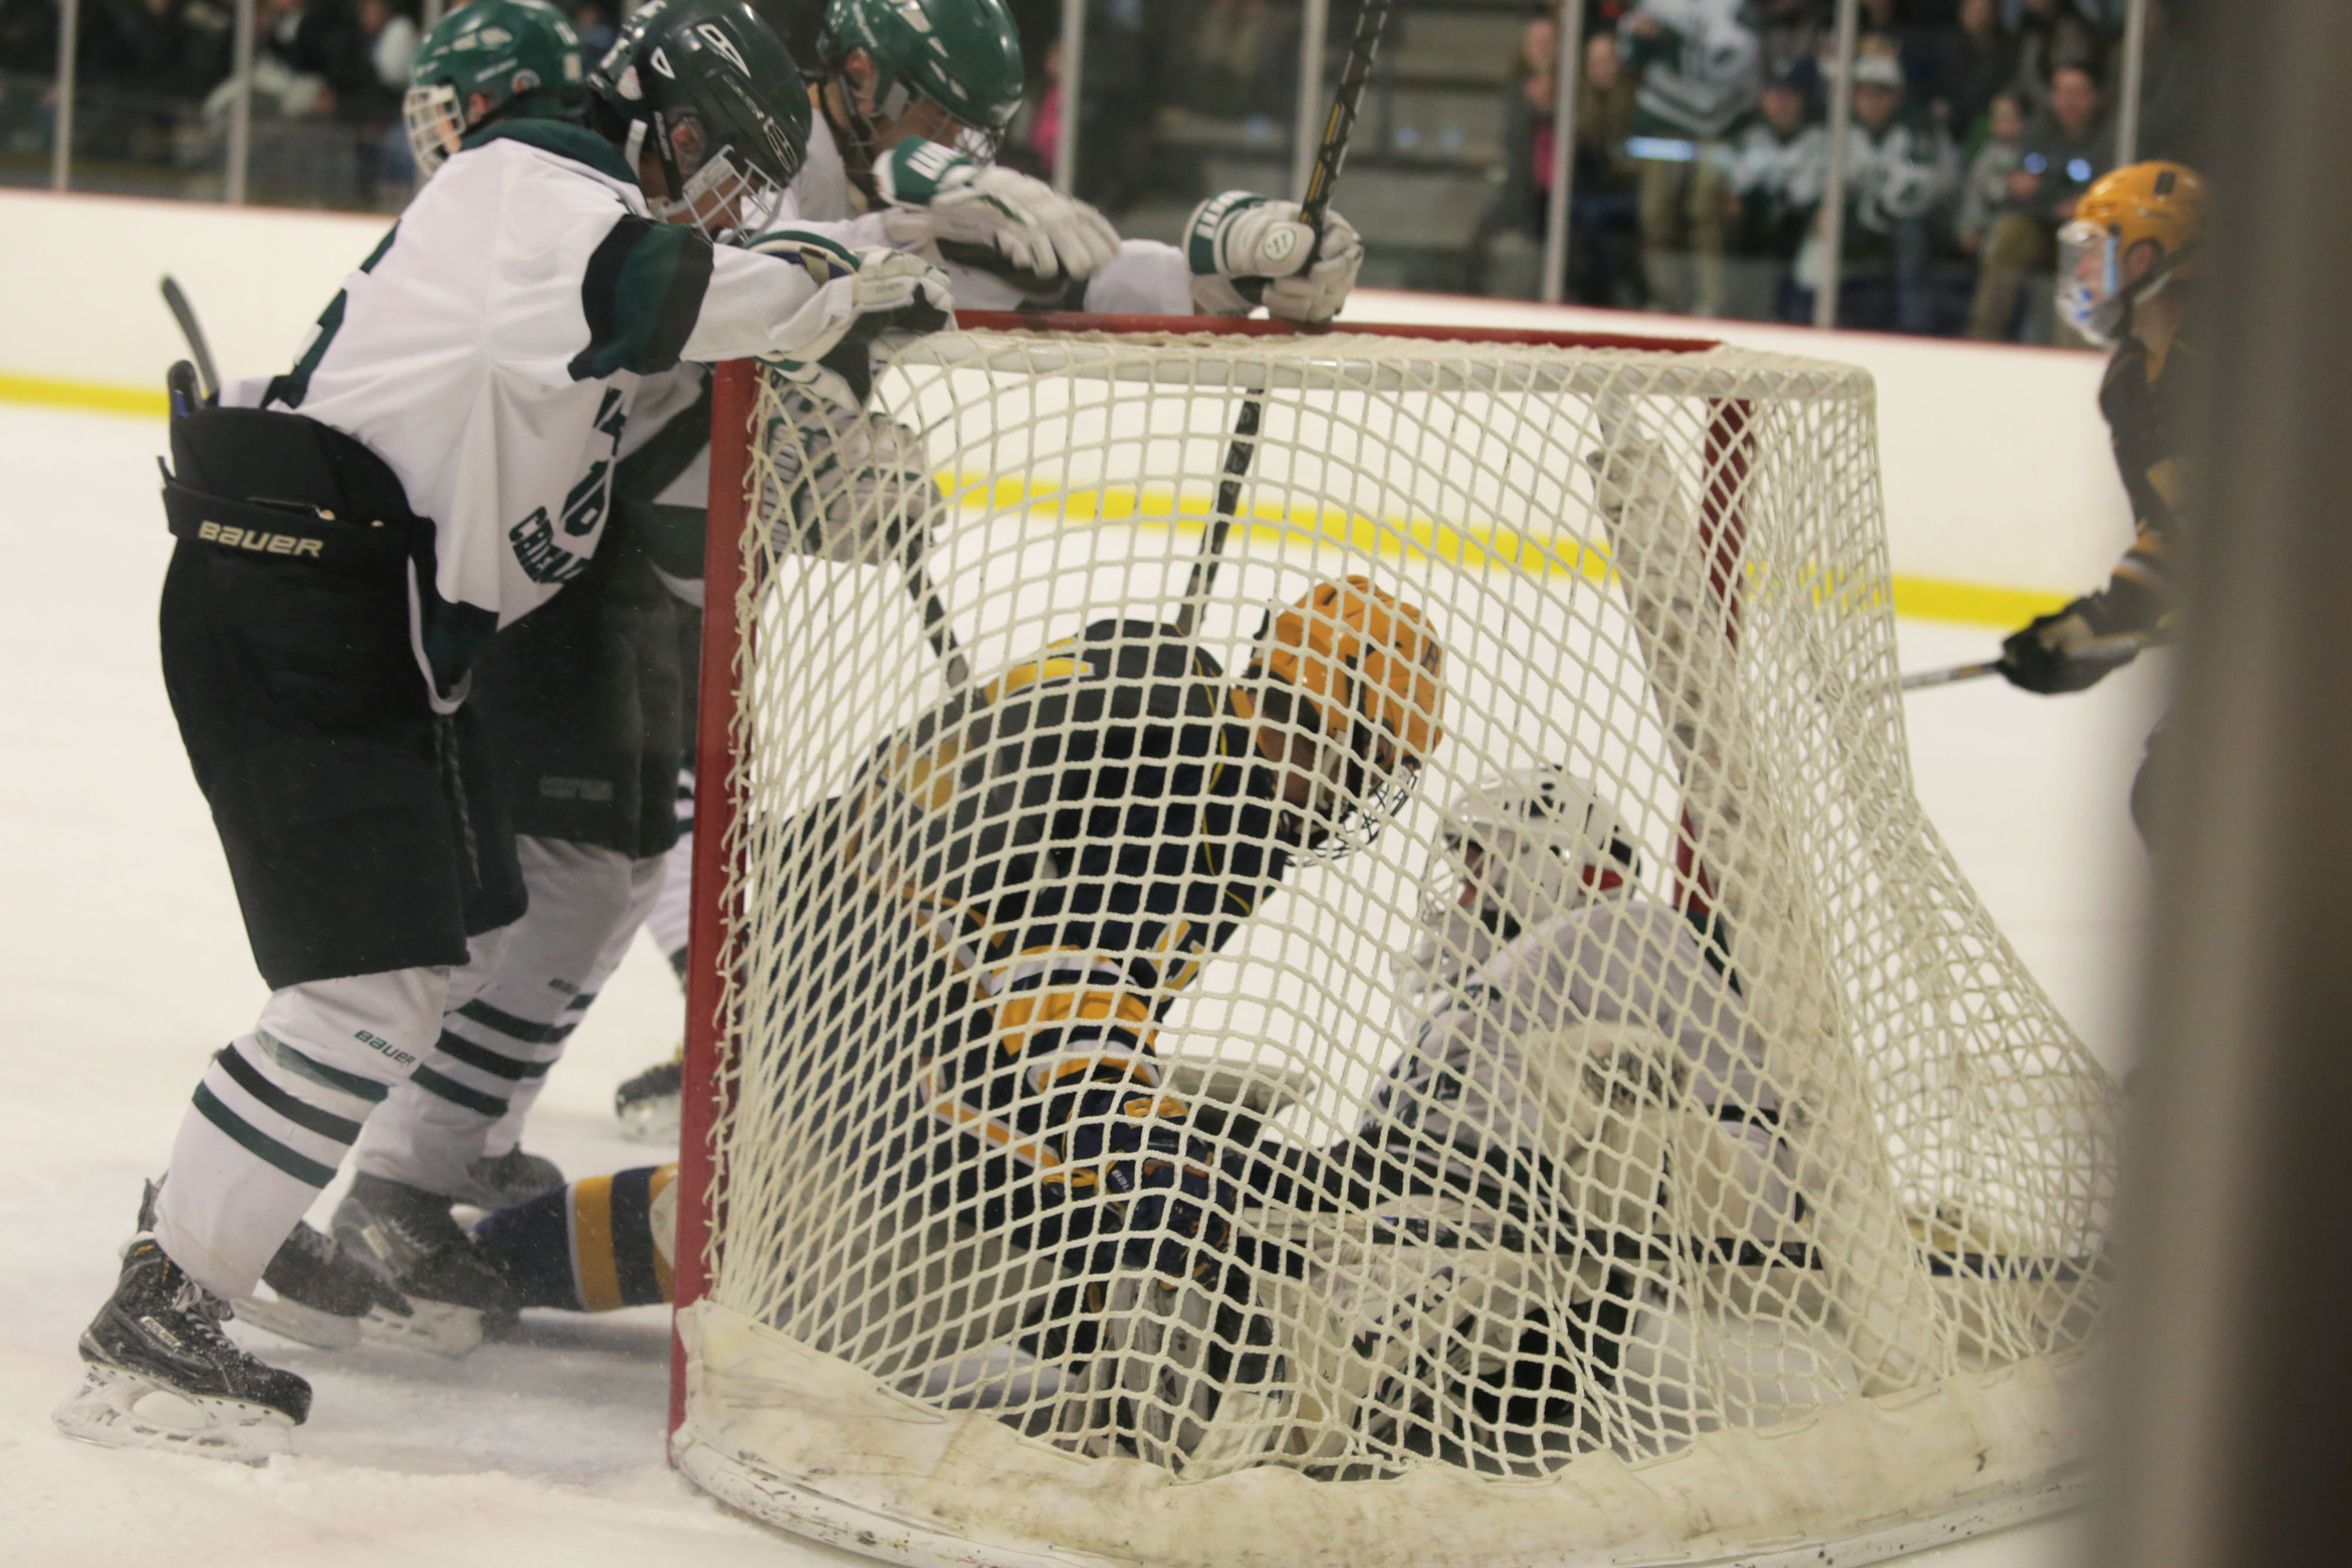 Barrington's Michael Grieve collides with the Ponaganset goalie after attempting to force the puck past the defender.